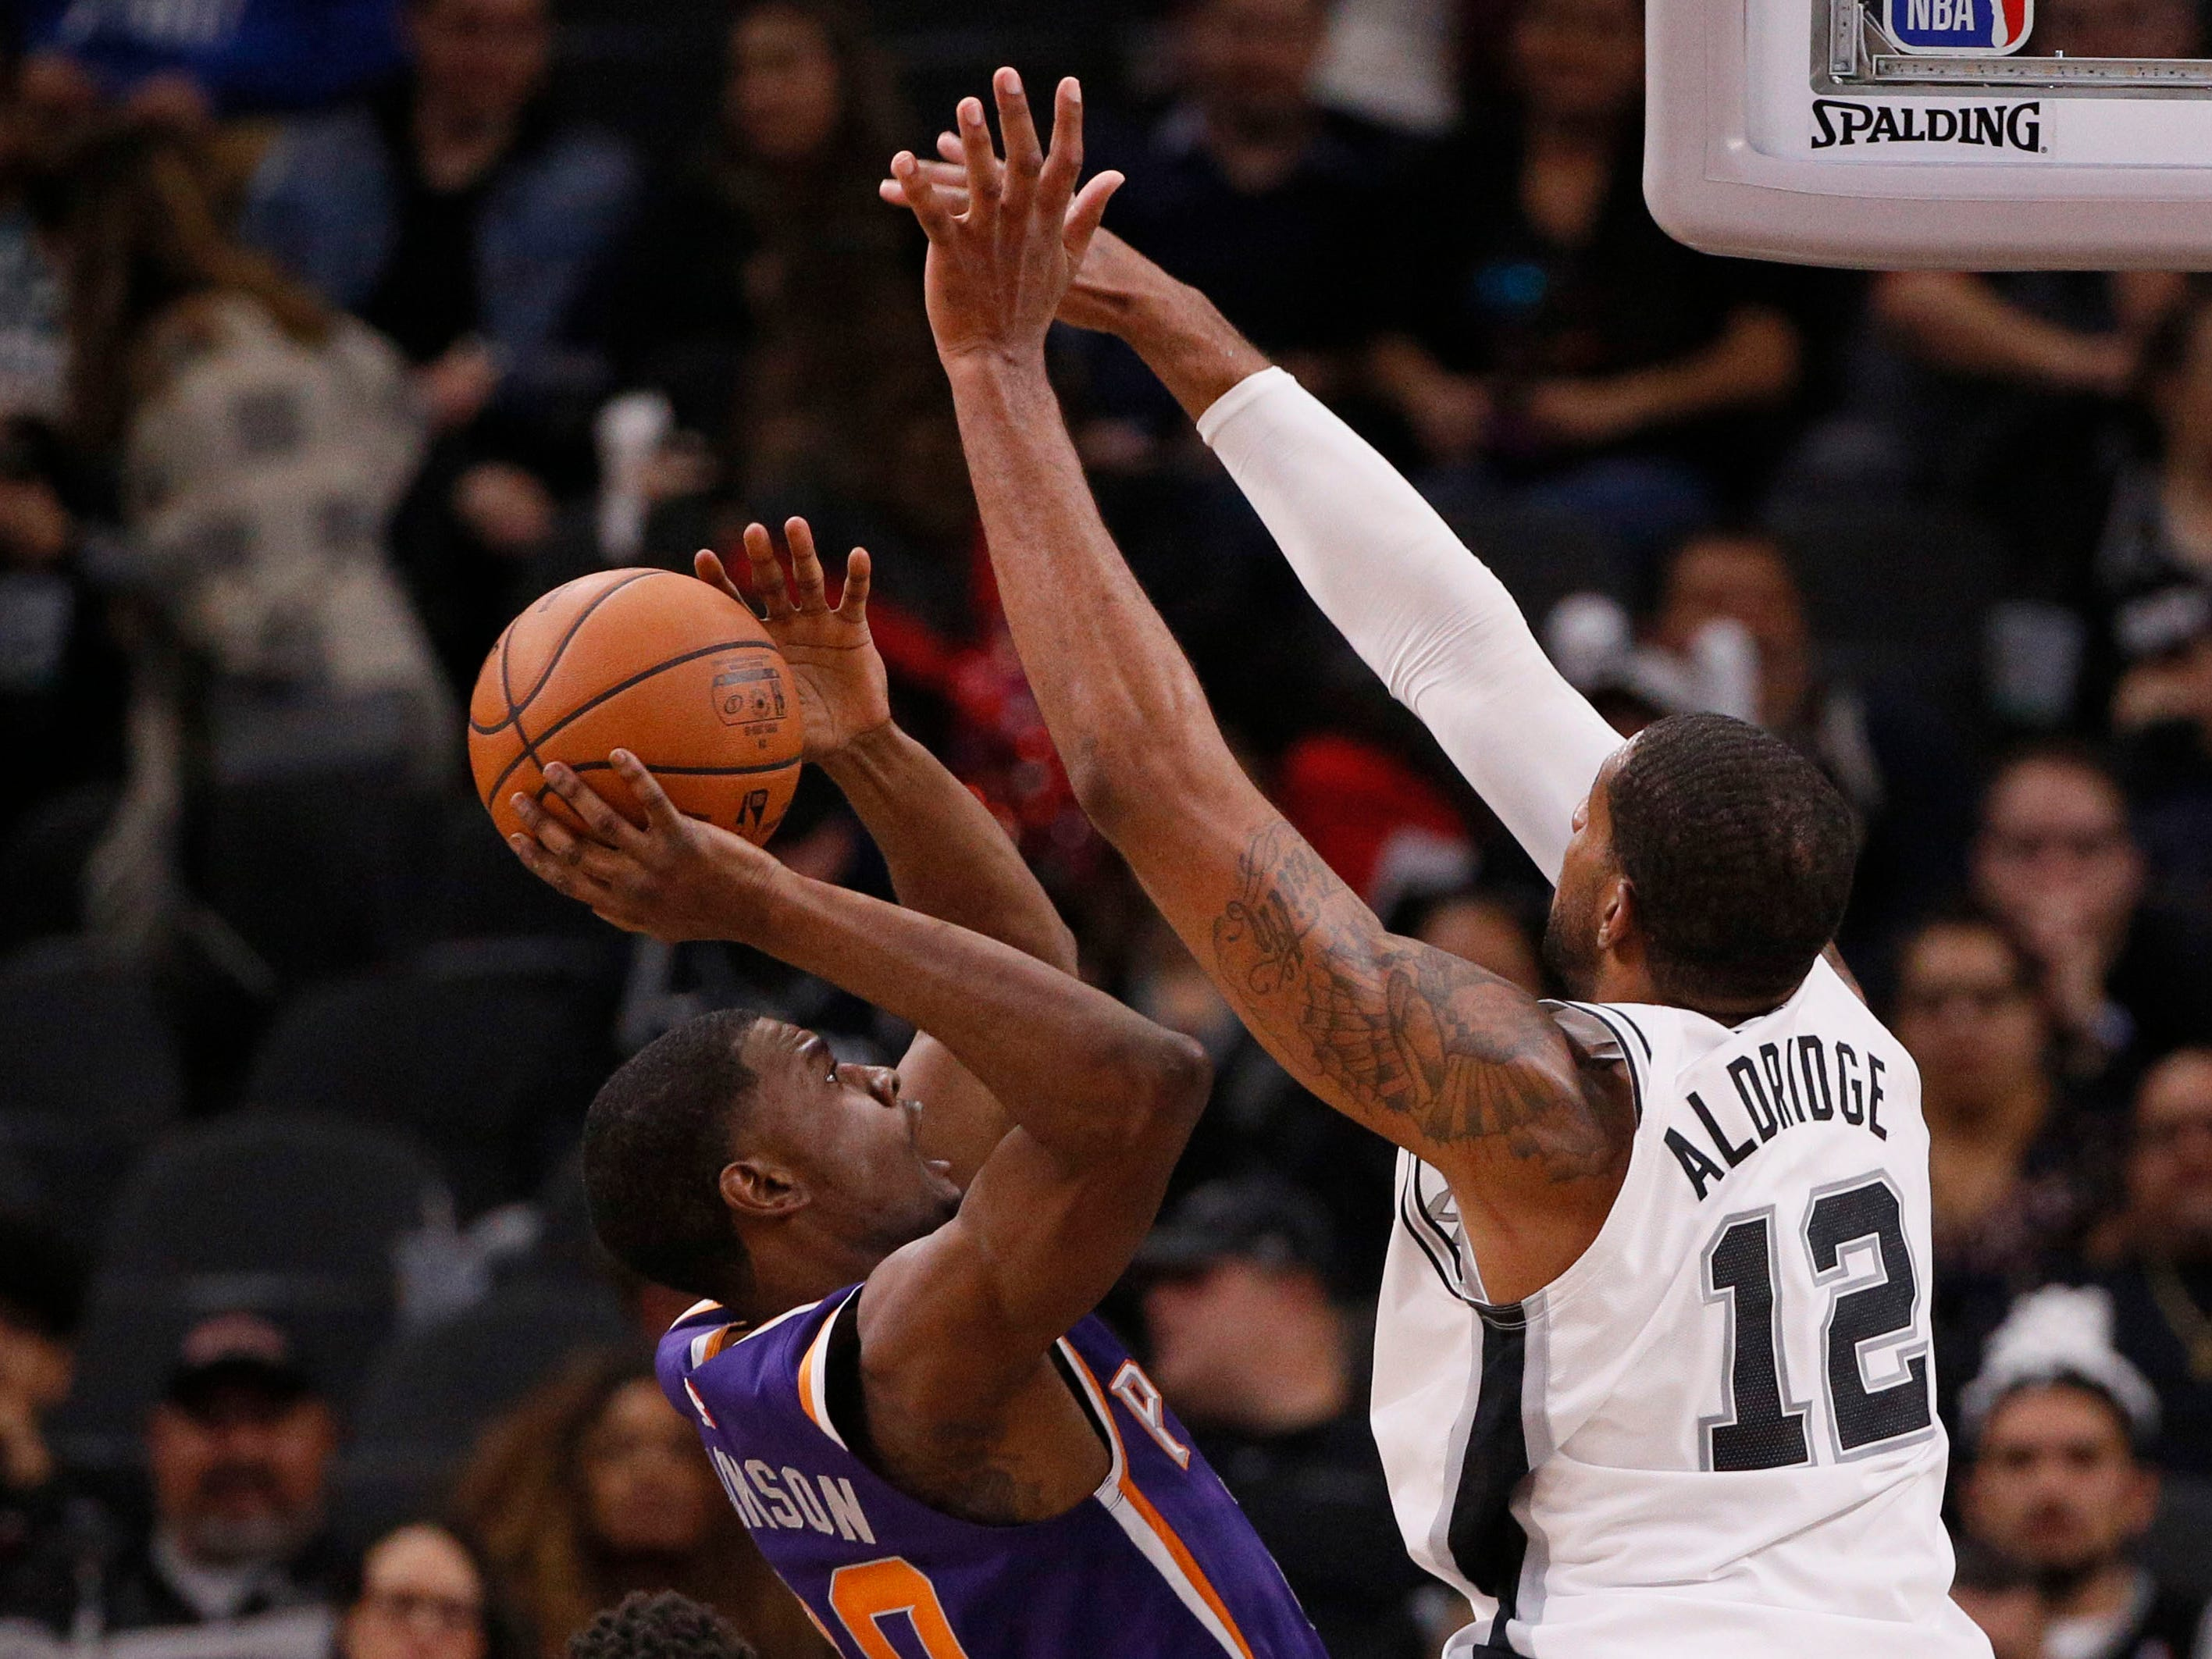 Dec 11, 2018; San Antonio, TX, USA; Phoenix Suns small forward Josh Jackson (left) shoots the ball as San Antonio Spurs power forward LaMarcus Aldridge (12) defends during the first half at AT&T Center. Mandatory Credit: Soobum Im-USA TODAY Sports